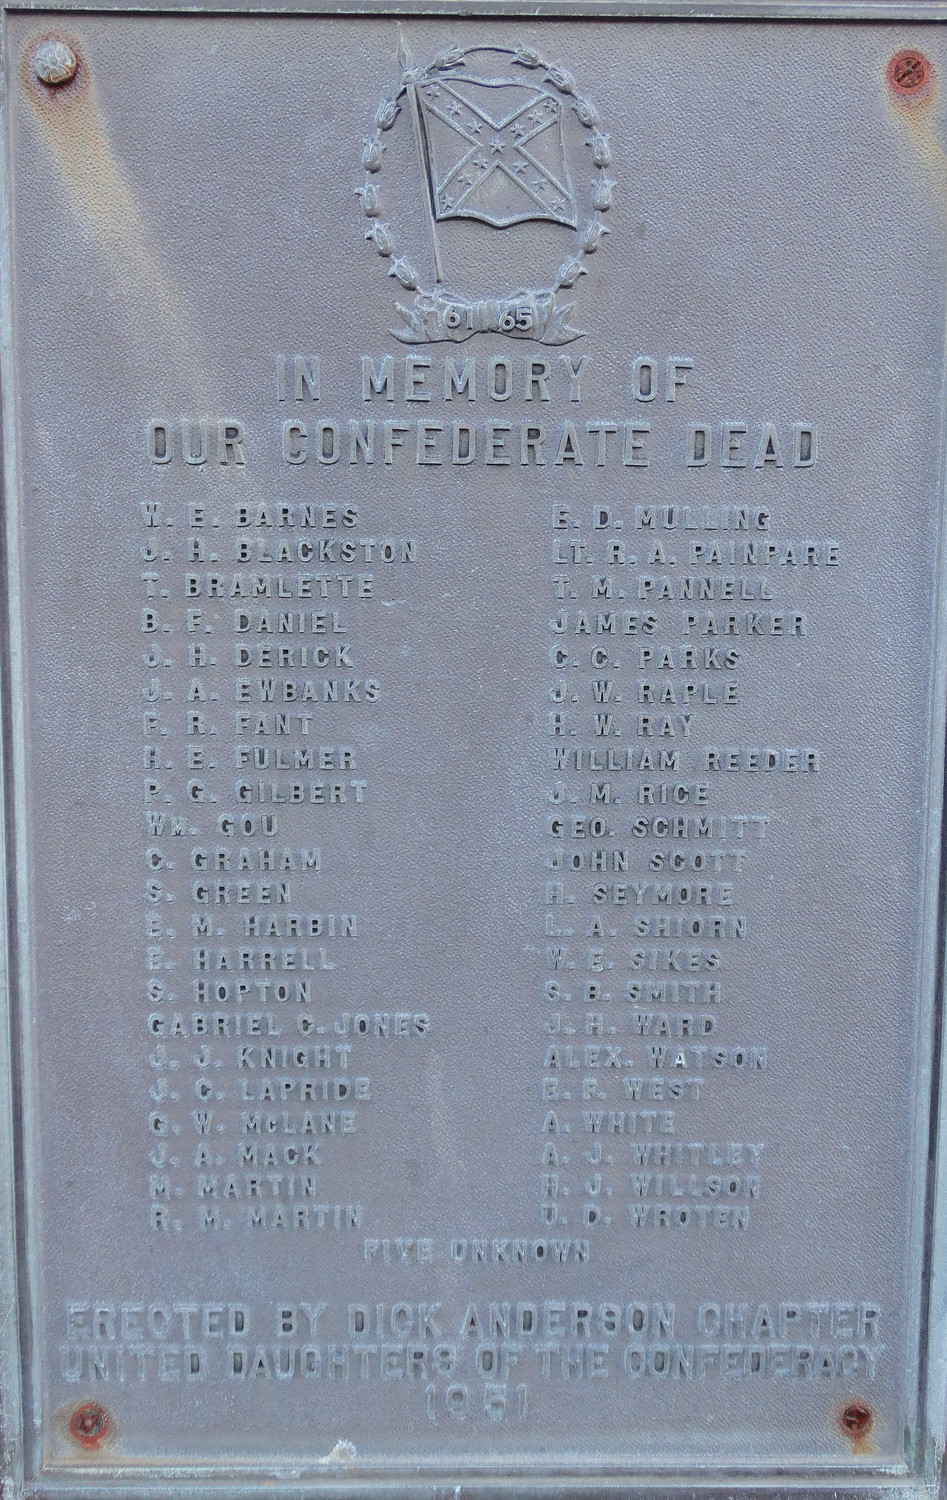 The memorial in Sumter Cemetery lists names of those buried there along with five unknown soldiers who died during the Civil War. A soldier who died after the Battle of Dingle's Mill was originally buried on the First Presbyterian Church grounds but was later moved to the Sumter Cemetery site.